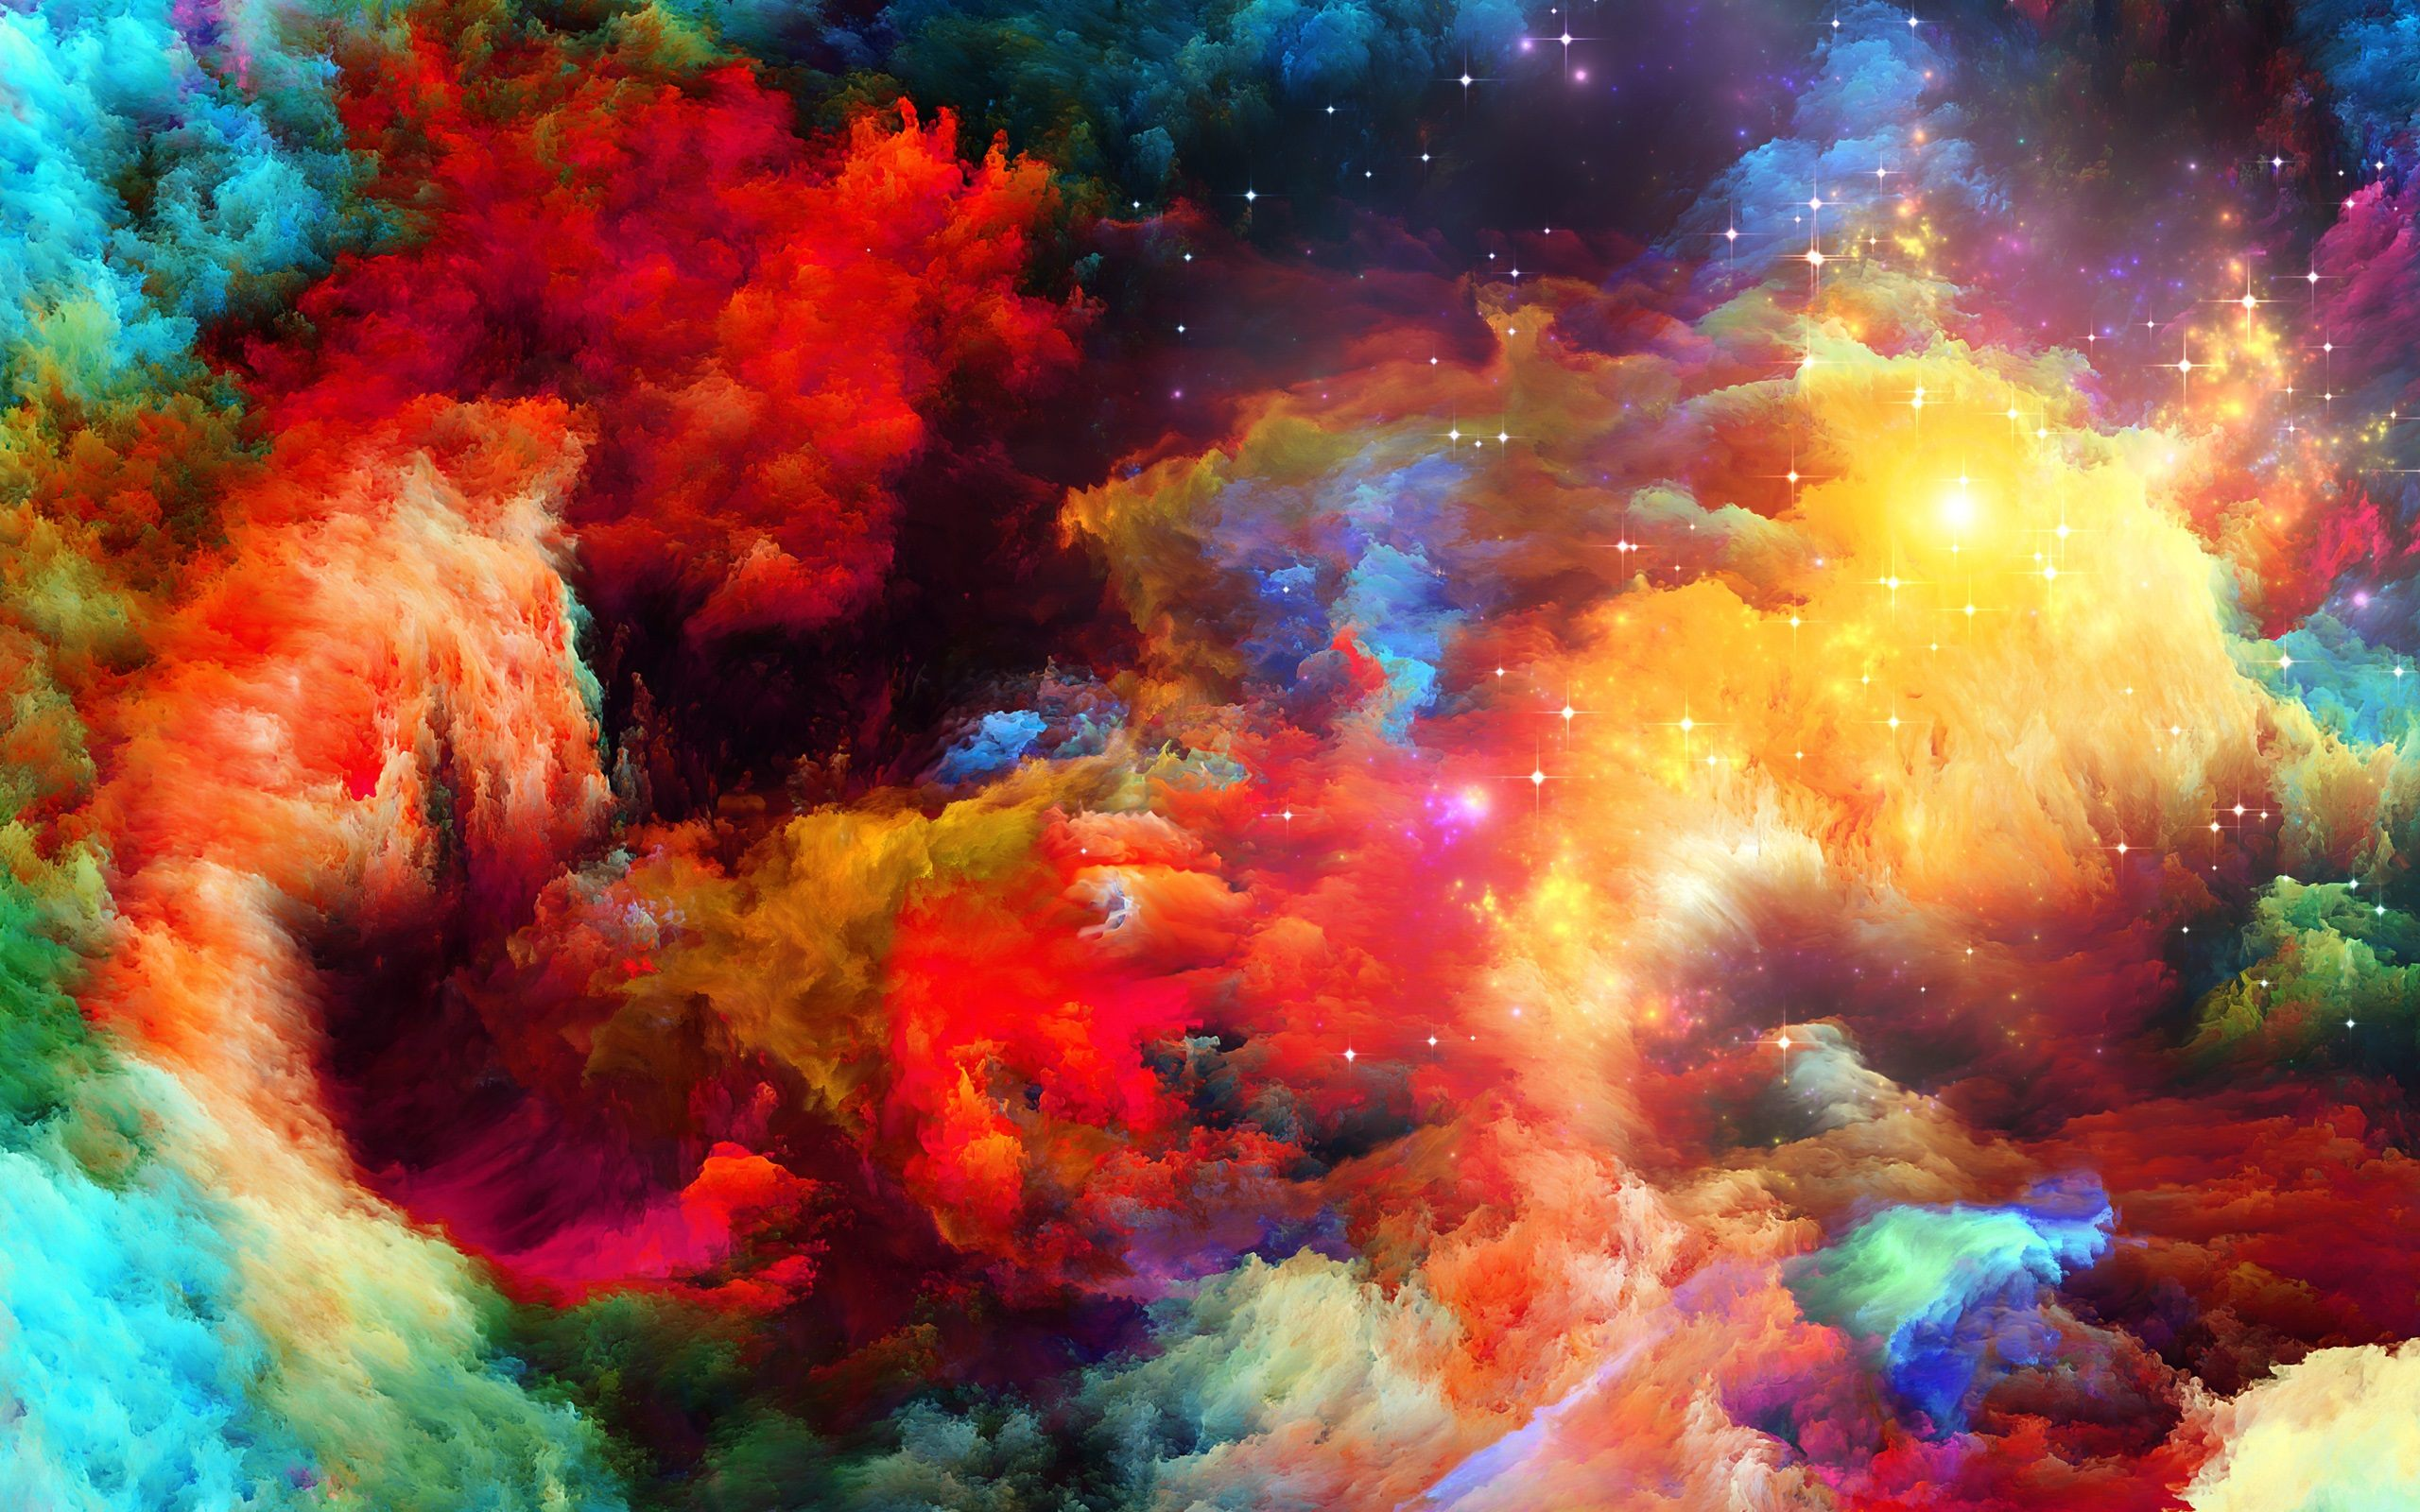 abstract rainbow explosion wallpaper background 63037